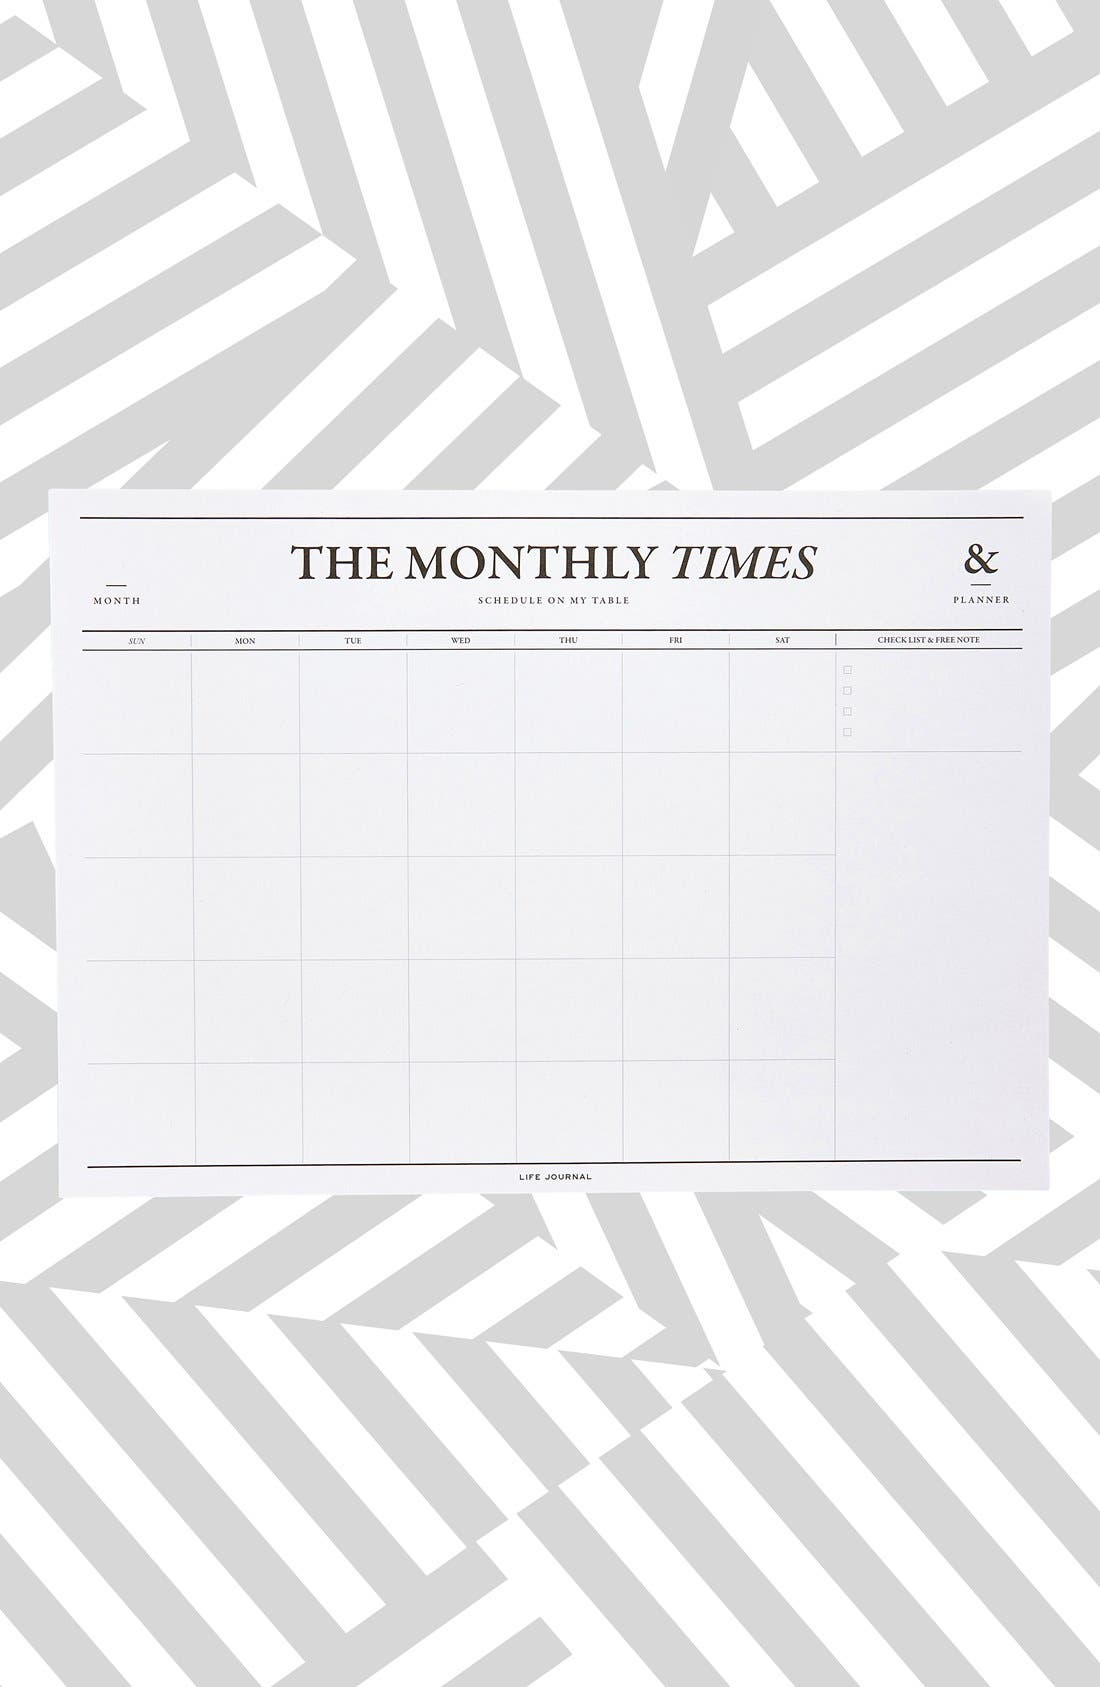 'The Monthly Times' Desk Notepad & Planner,                             Main thumbnail 1, color,                             102